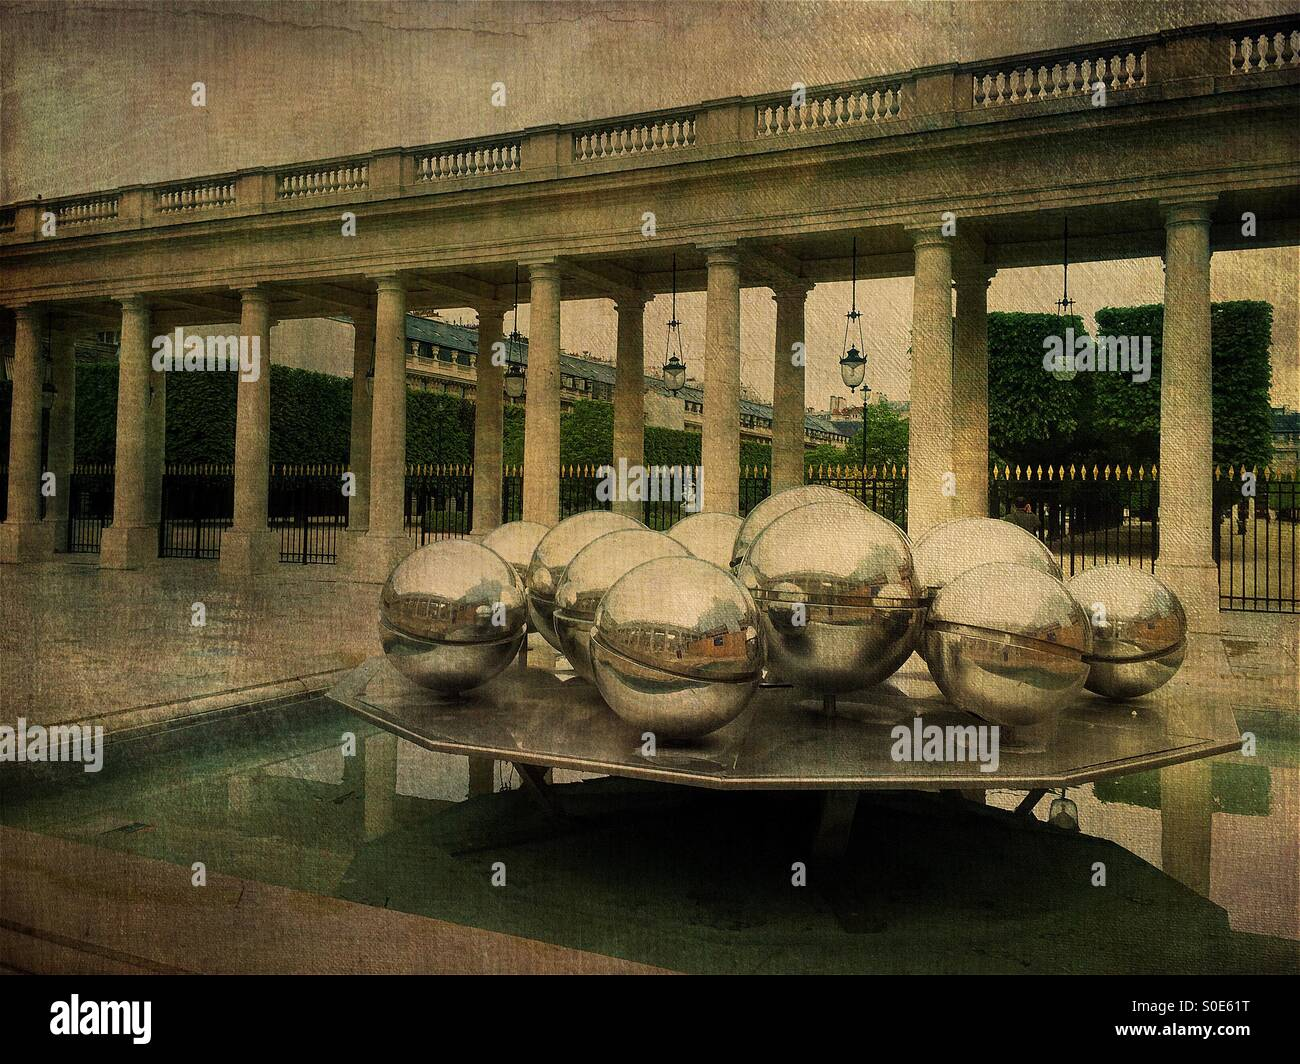 View of Fontaines installation by Pol Bury at the Orleans Gallery of Place du Palais-Royal in Paris, France. TheStock Photo